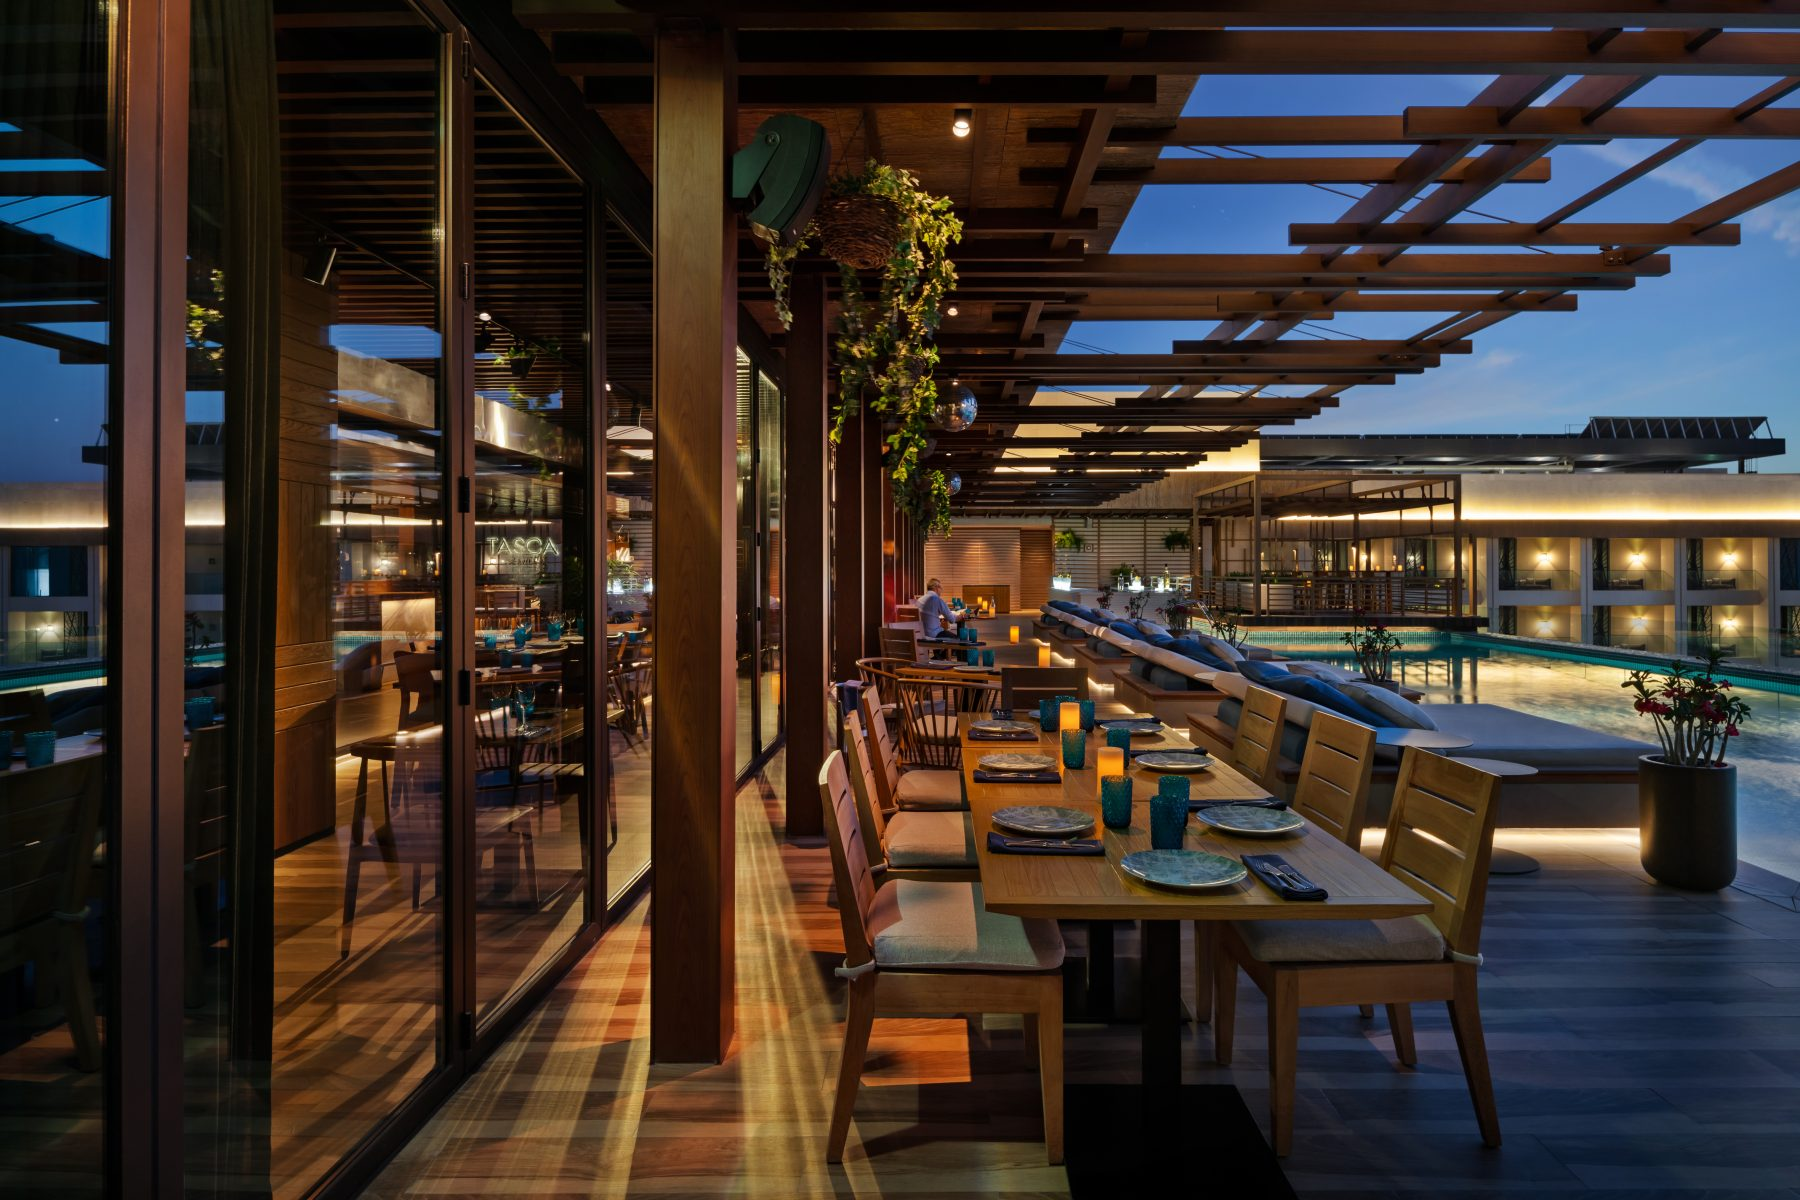 Tasca and The Bay at the Mandarin Oriental Jumeira, Dubai